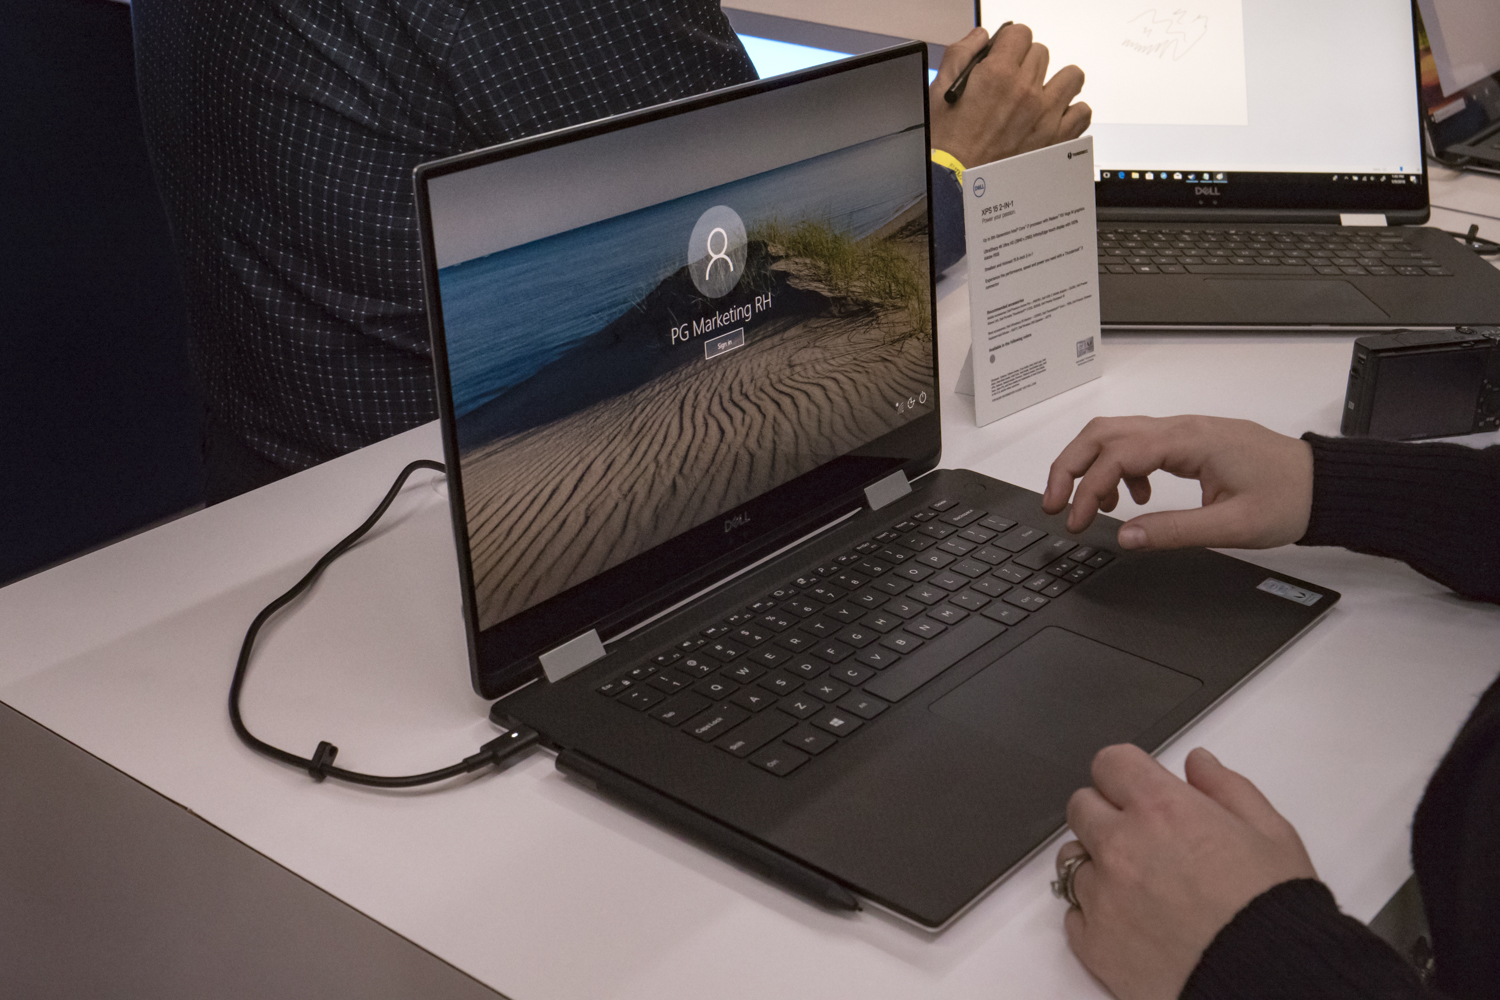 Dell XPS 15 2-in-1 vs Surface Book 2